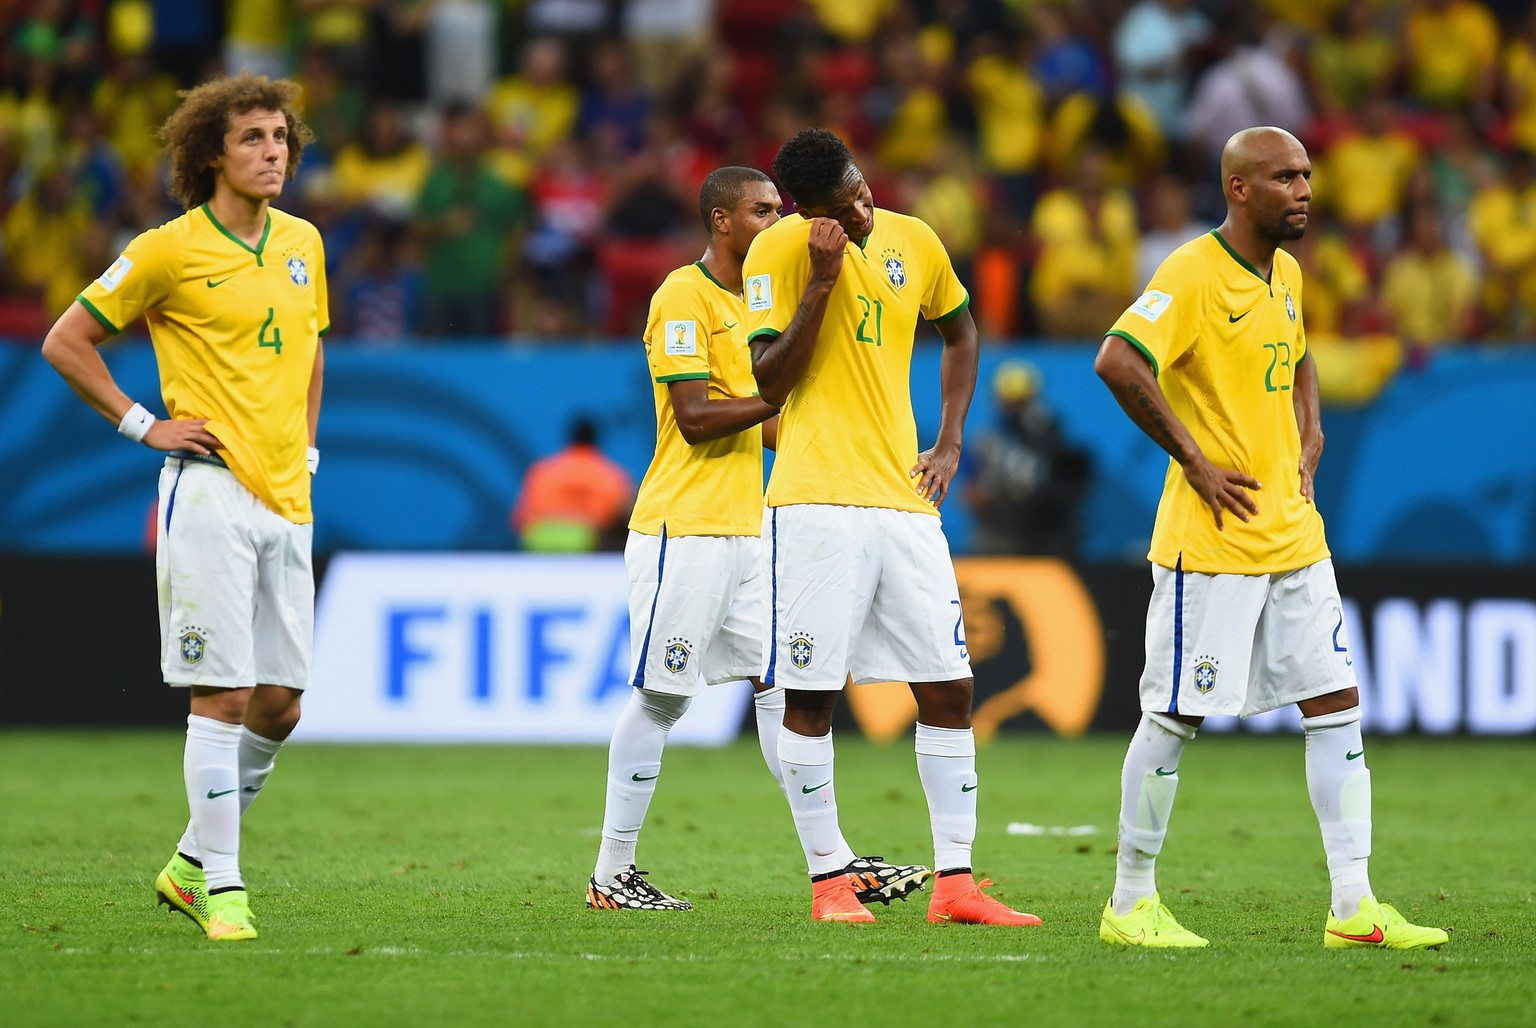 BRASILIA, BRAZIL - JULY 12: (L-R) David Luiz, Fernandinho, Jo and Maicon of Brazil look on after being defeated by the Netherlands 3-0 during the 2014 FIFA World Cup Brazil Third Place Playoff match between Brazil and the Netherlands at Estadio Nacional on July 12, 2014 in Brasilia, Brazil.  (Photo by Jamie McDonald/Getty Images)